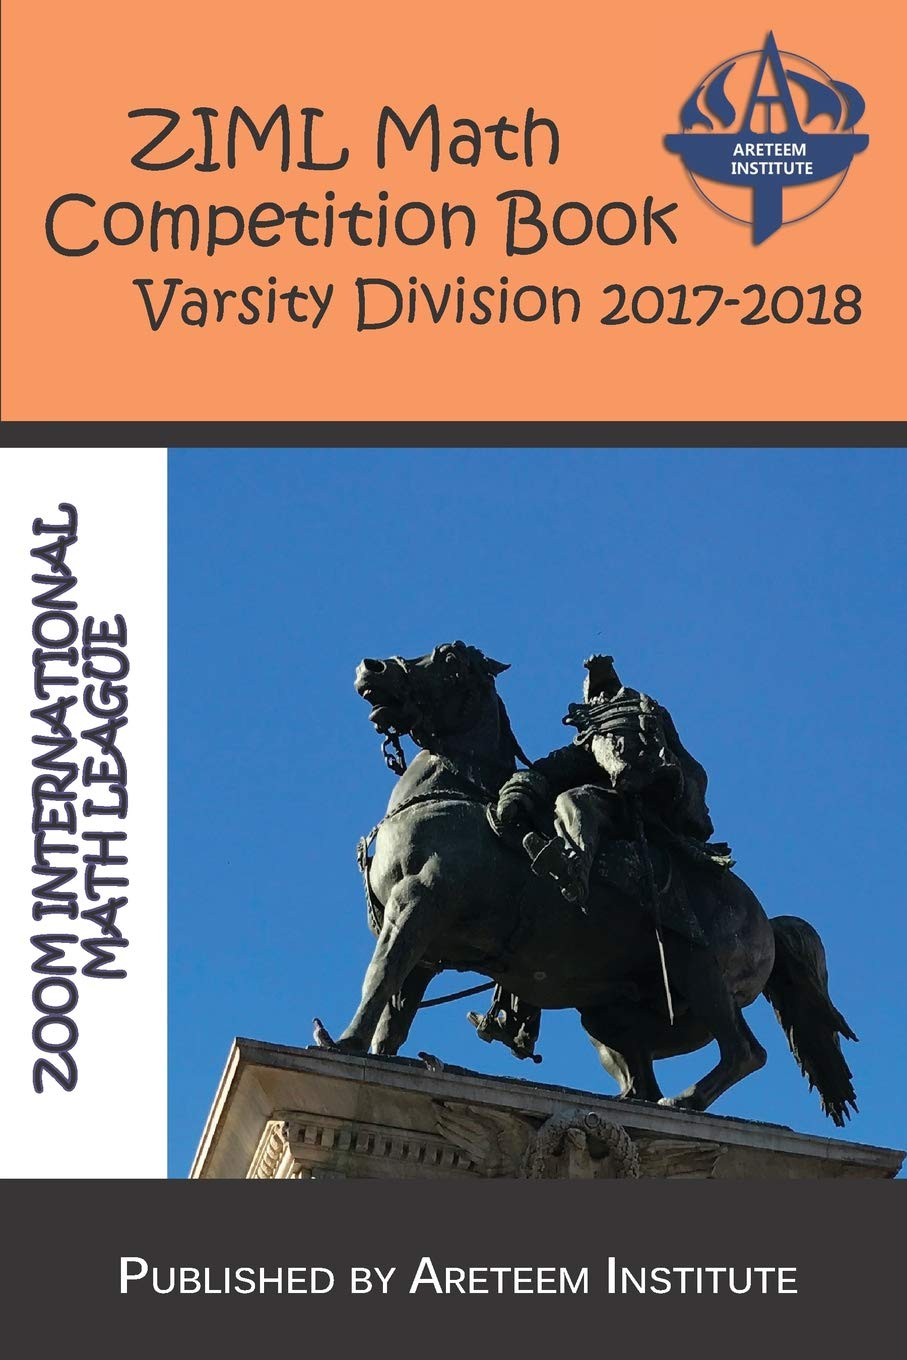 ZIML Math Competition Book Varsity Division 2017-2018 (ZIML